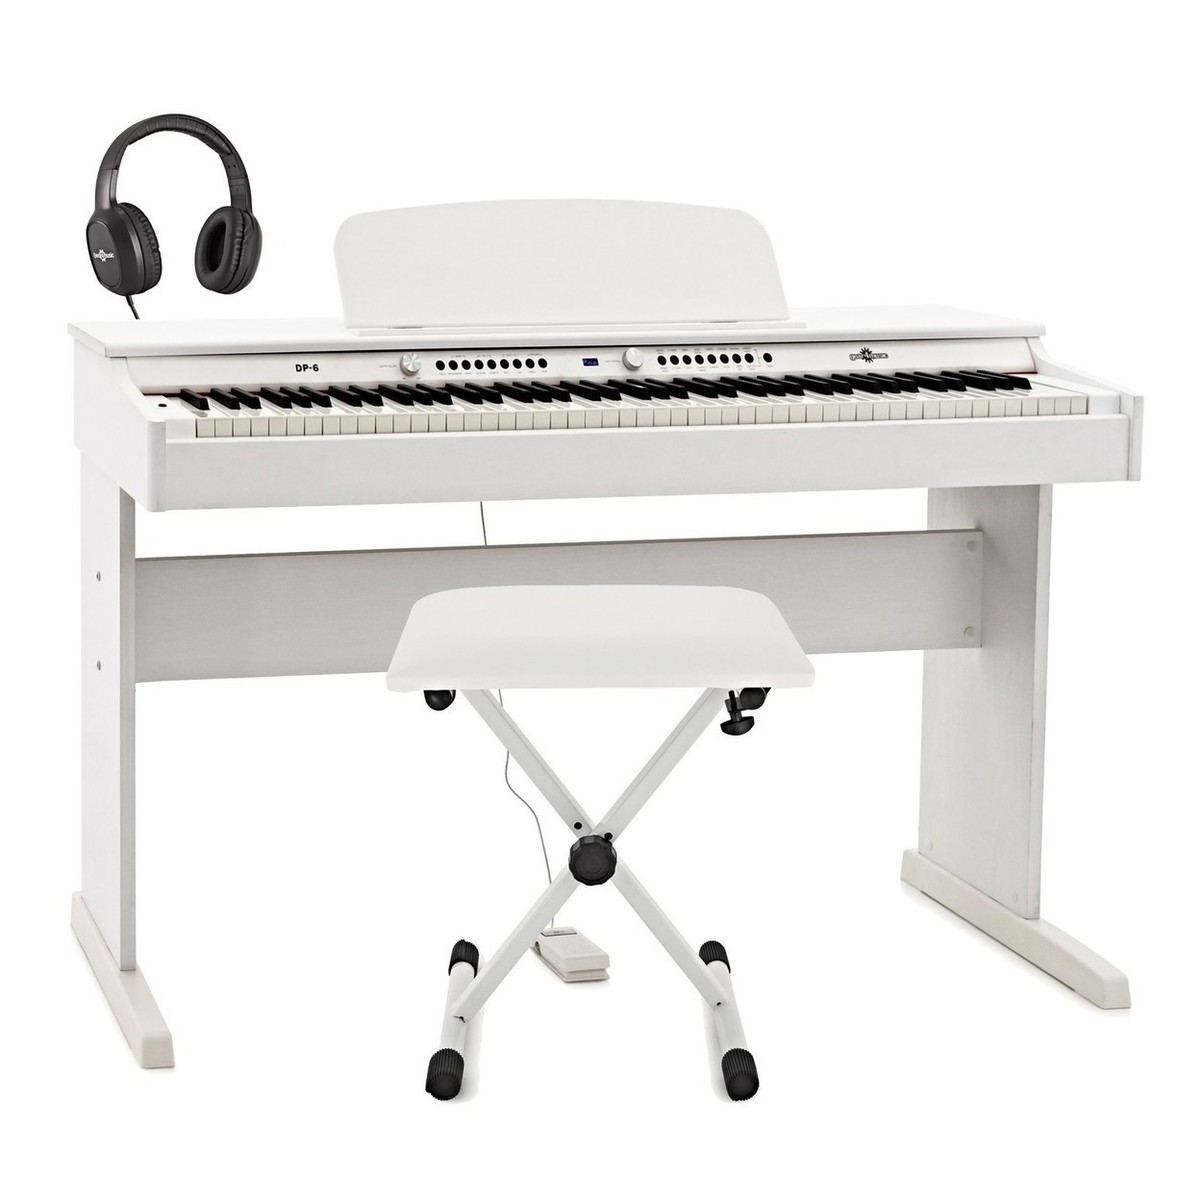 DP-6 Digital Piano by Gear4music   Accessory Pack, White